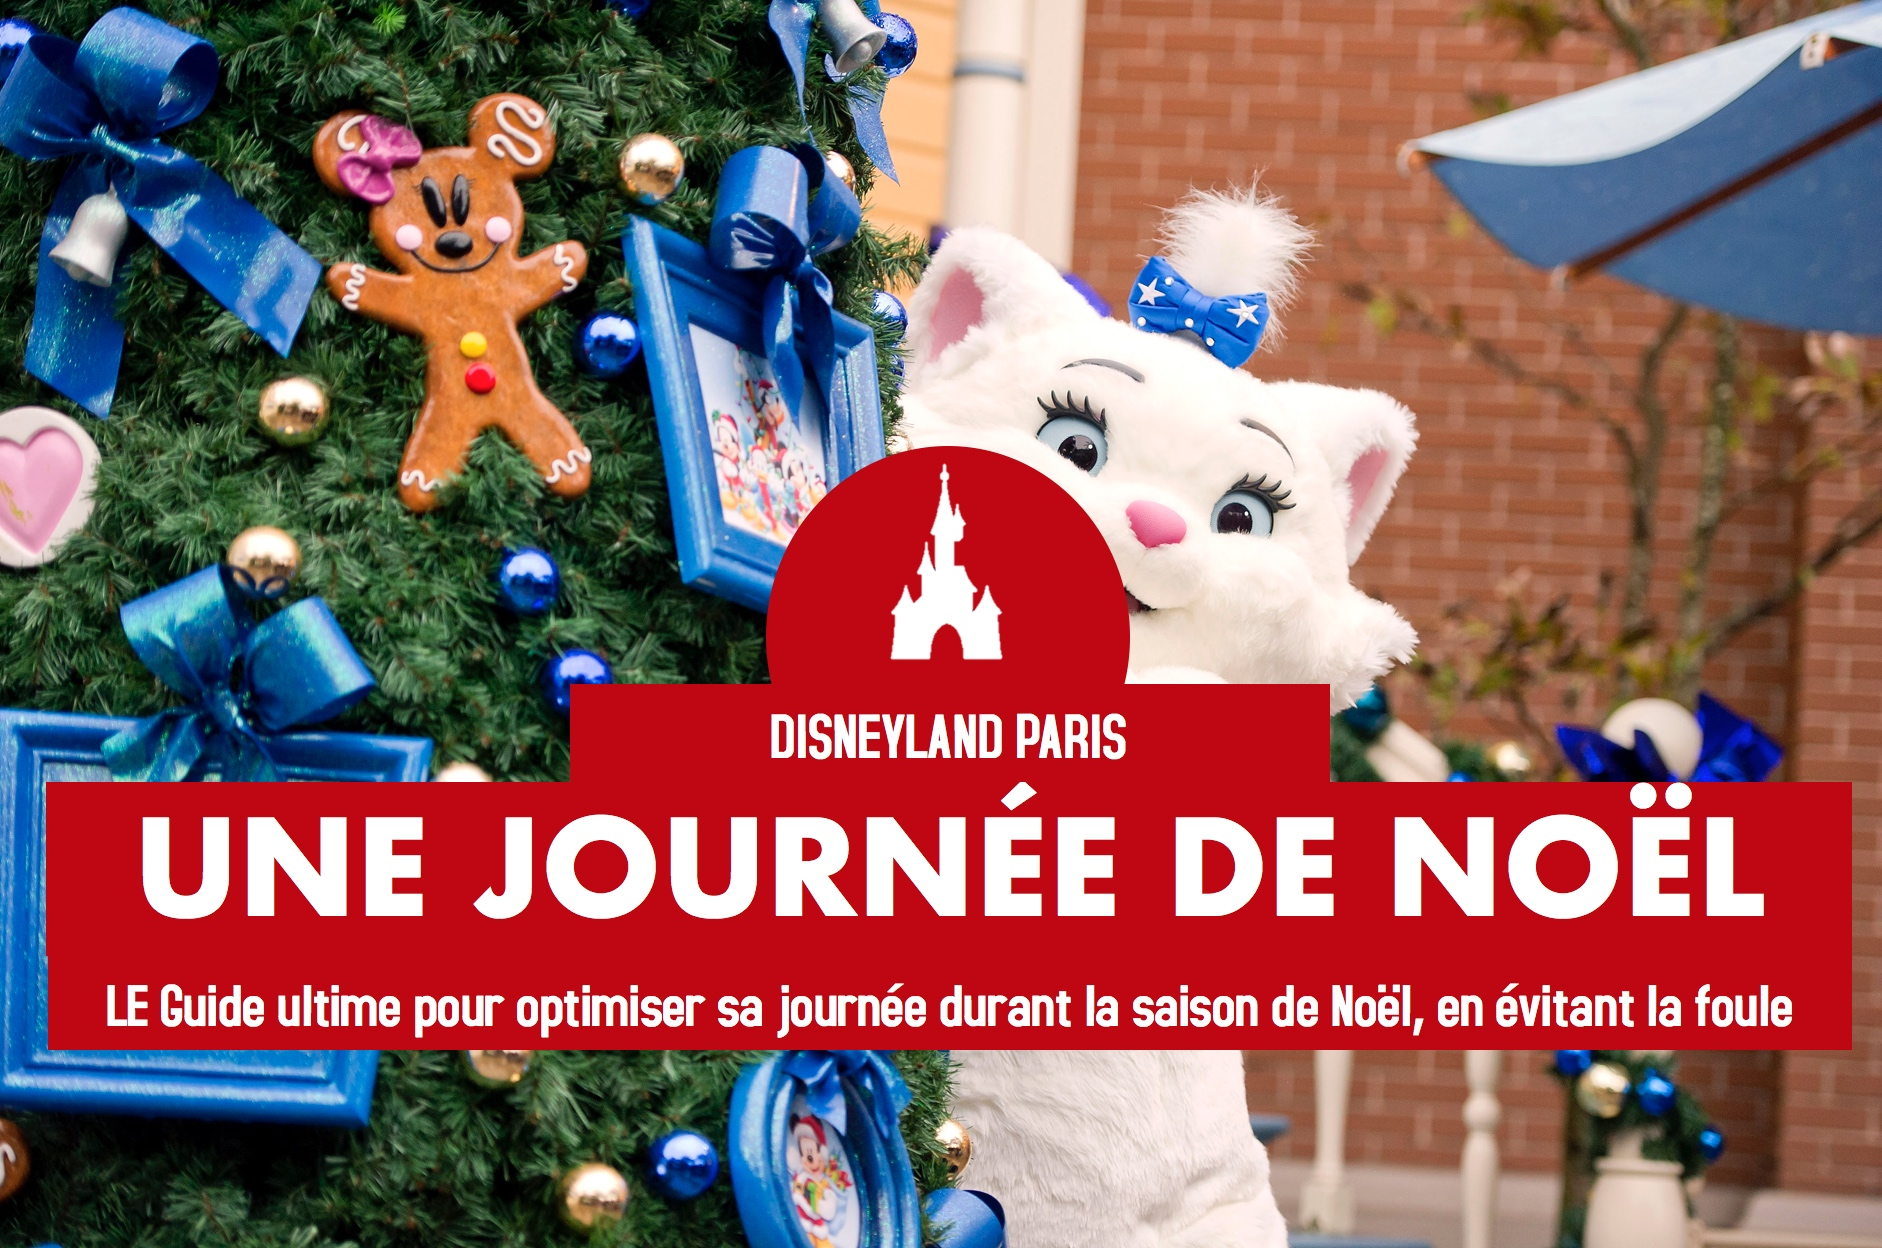 noel disneyland paris guide planification sejour